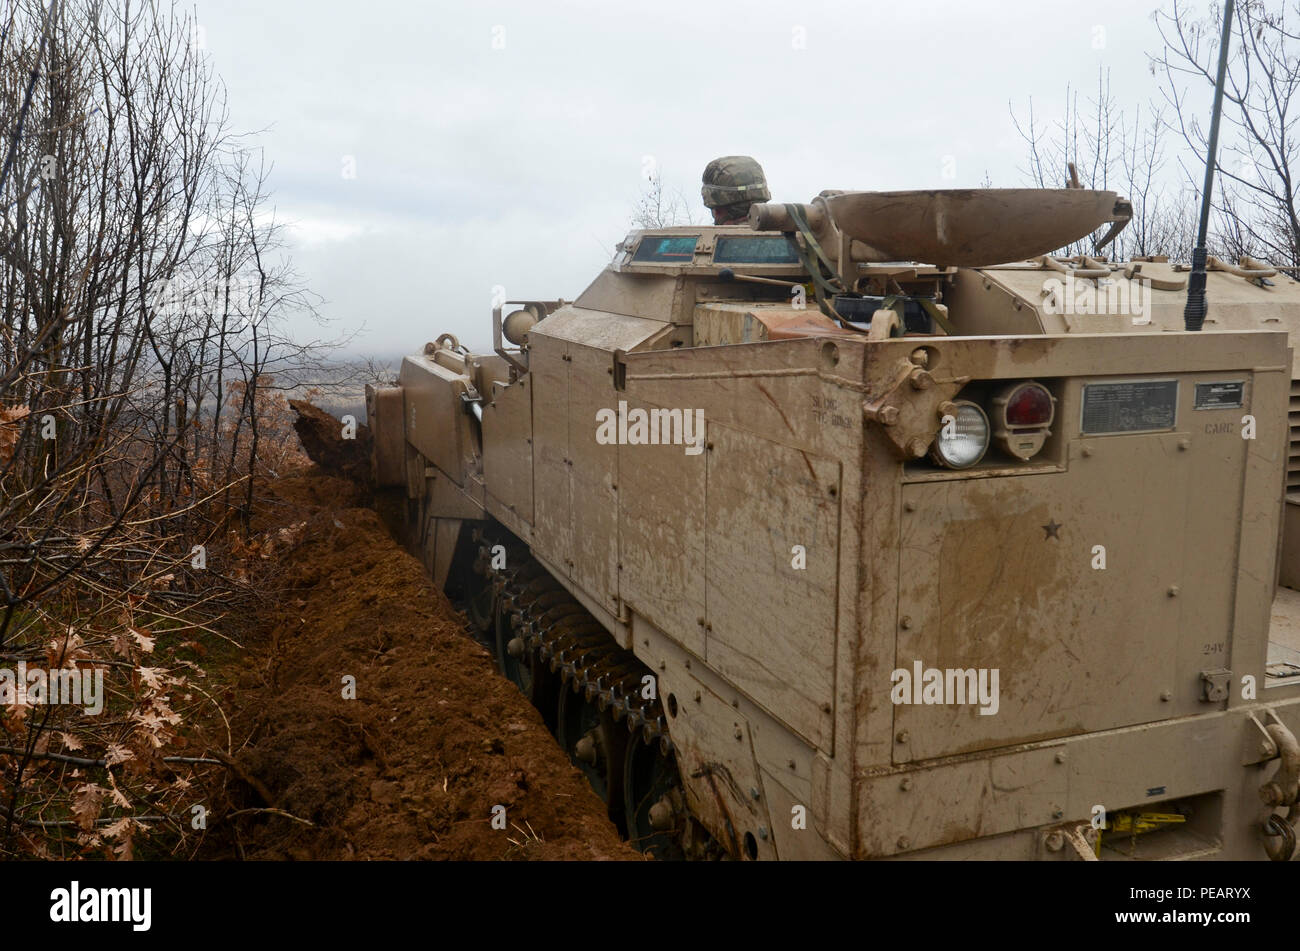 Spc. John McIntyre, a combat engineer attached to 5th Squadron, 7th Cavalry Regiment, 3rd Infantry Division, stationed at Fort Stewart, Ga., makes a hull-down battle position with an M9 Armored Combat Earthmover during Exercise Peace Sentinel at Novo Selo Training Center, Bulgaria, Nov. 23, 2015. (Photo by Staff Sgt. Steven M. Colvin/Released) - Stock Image